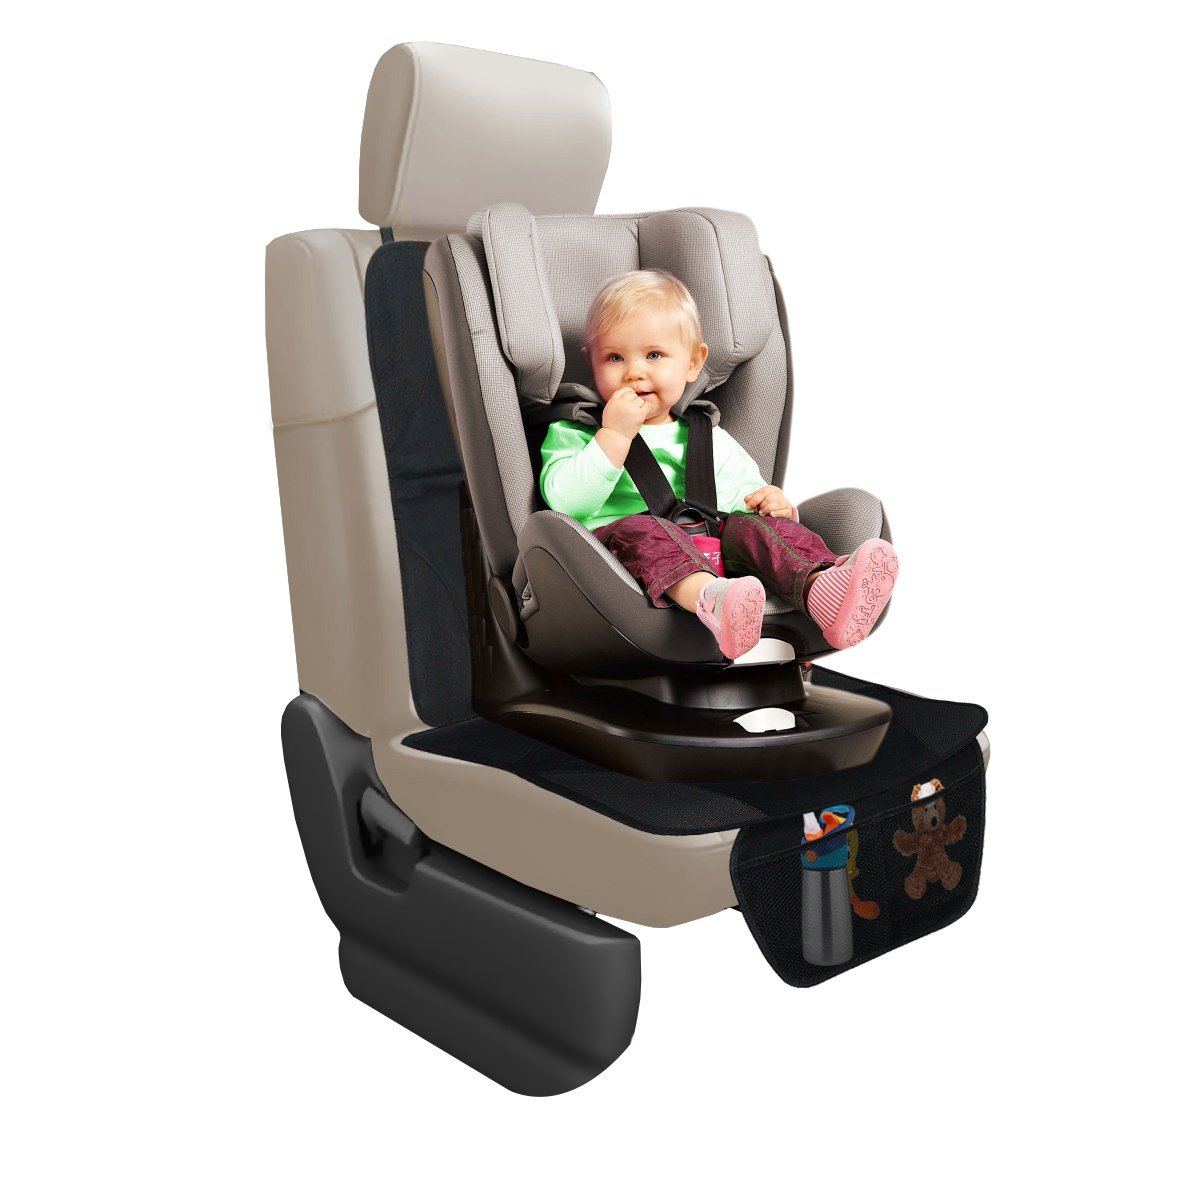 Oetoe Car Seat Protector, Luxury Mat Protector to Keep Nice and Clean Under Your Baby s Infant Car Seat, Protect Your Auto Leather and Upholstery Seats from Damage, Includes 2 Handy Storage Pockets